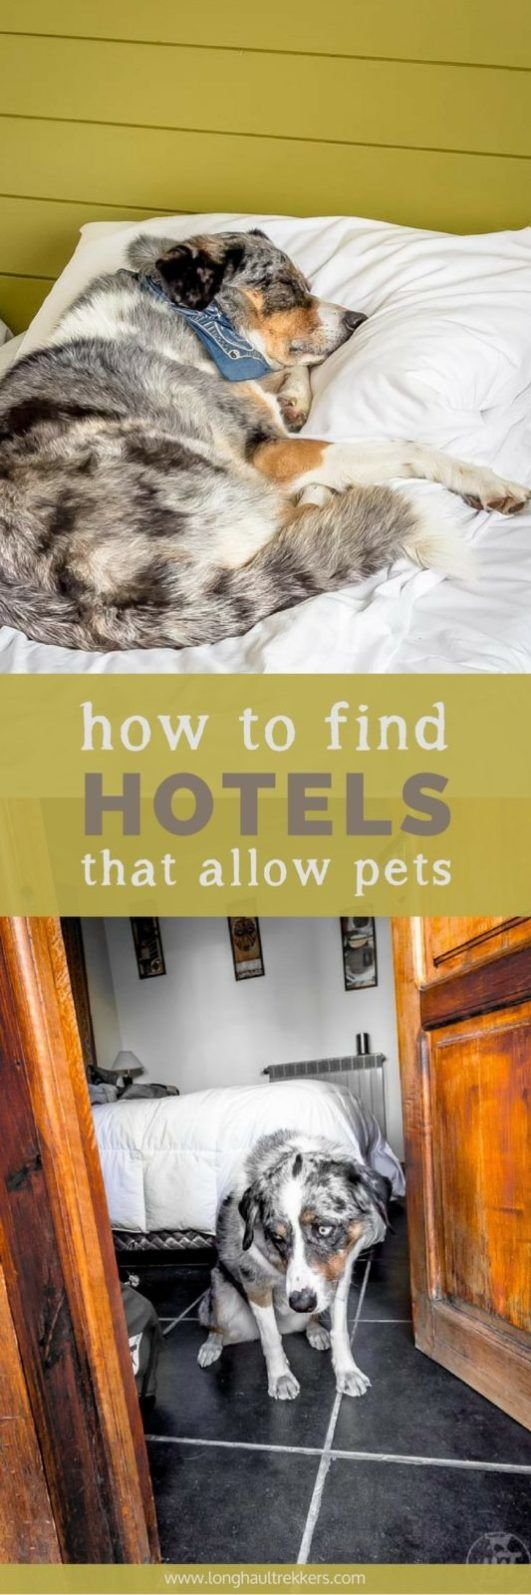 How To Find Hotels That Allow Pets While Traveling Dog Literature